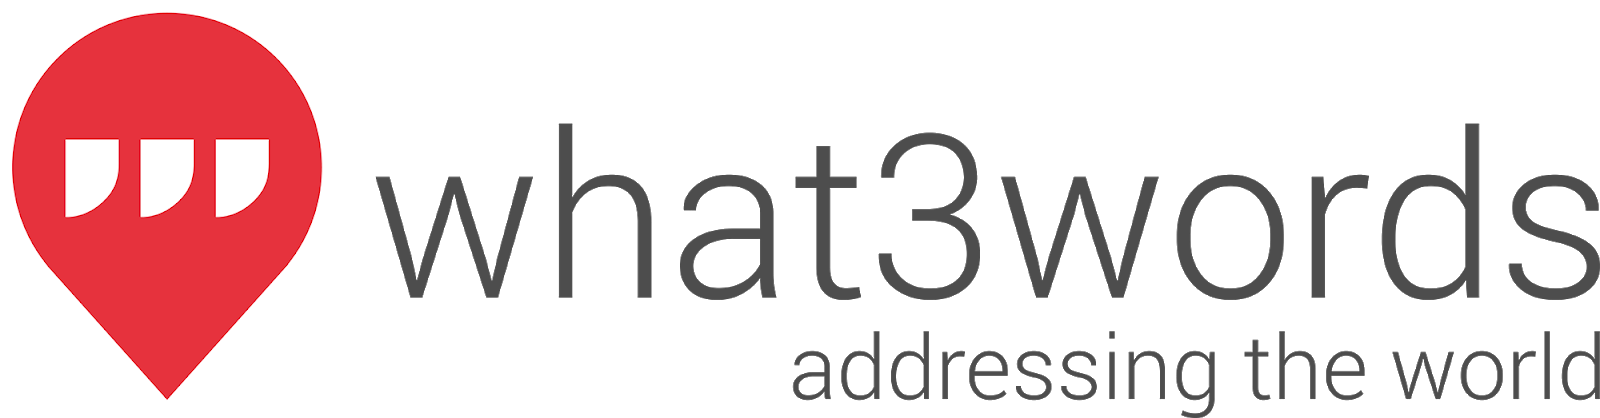 The original what3words logo (a red pin containing 3 white apostrophes